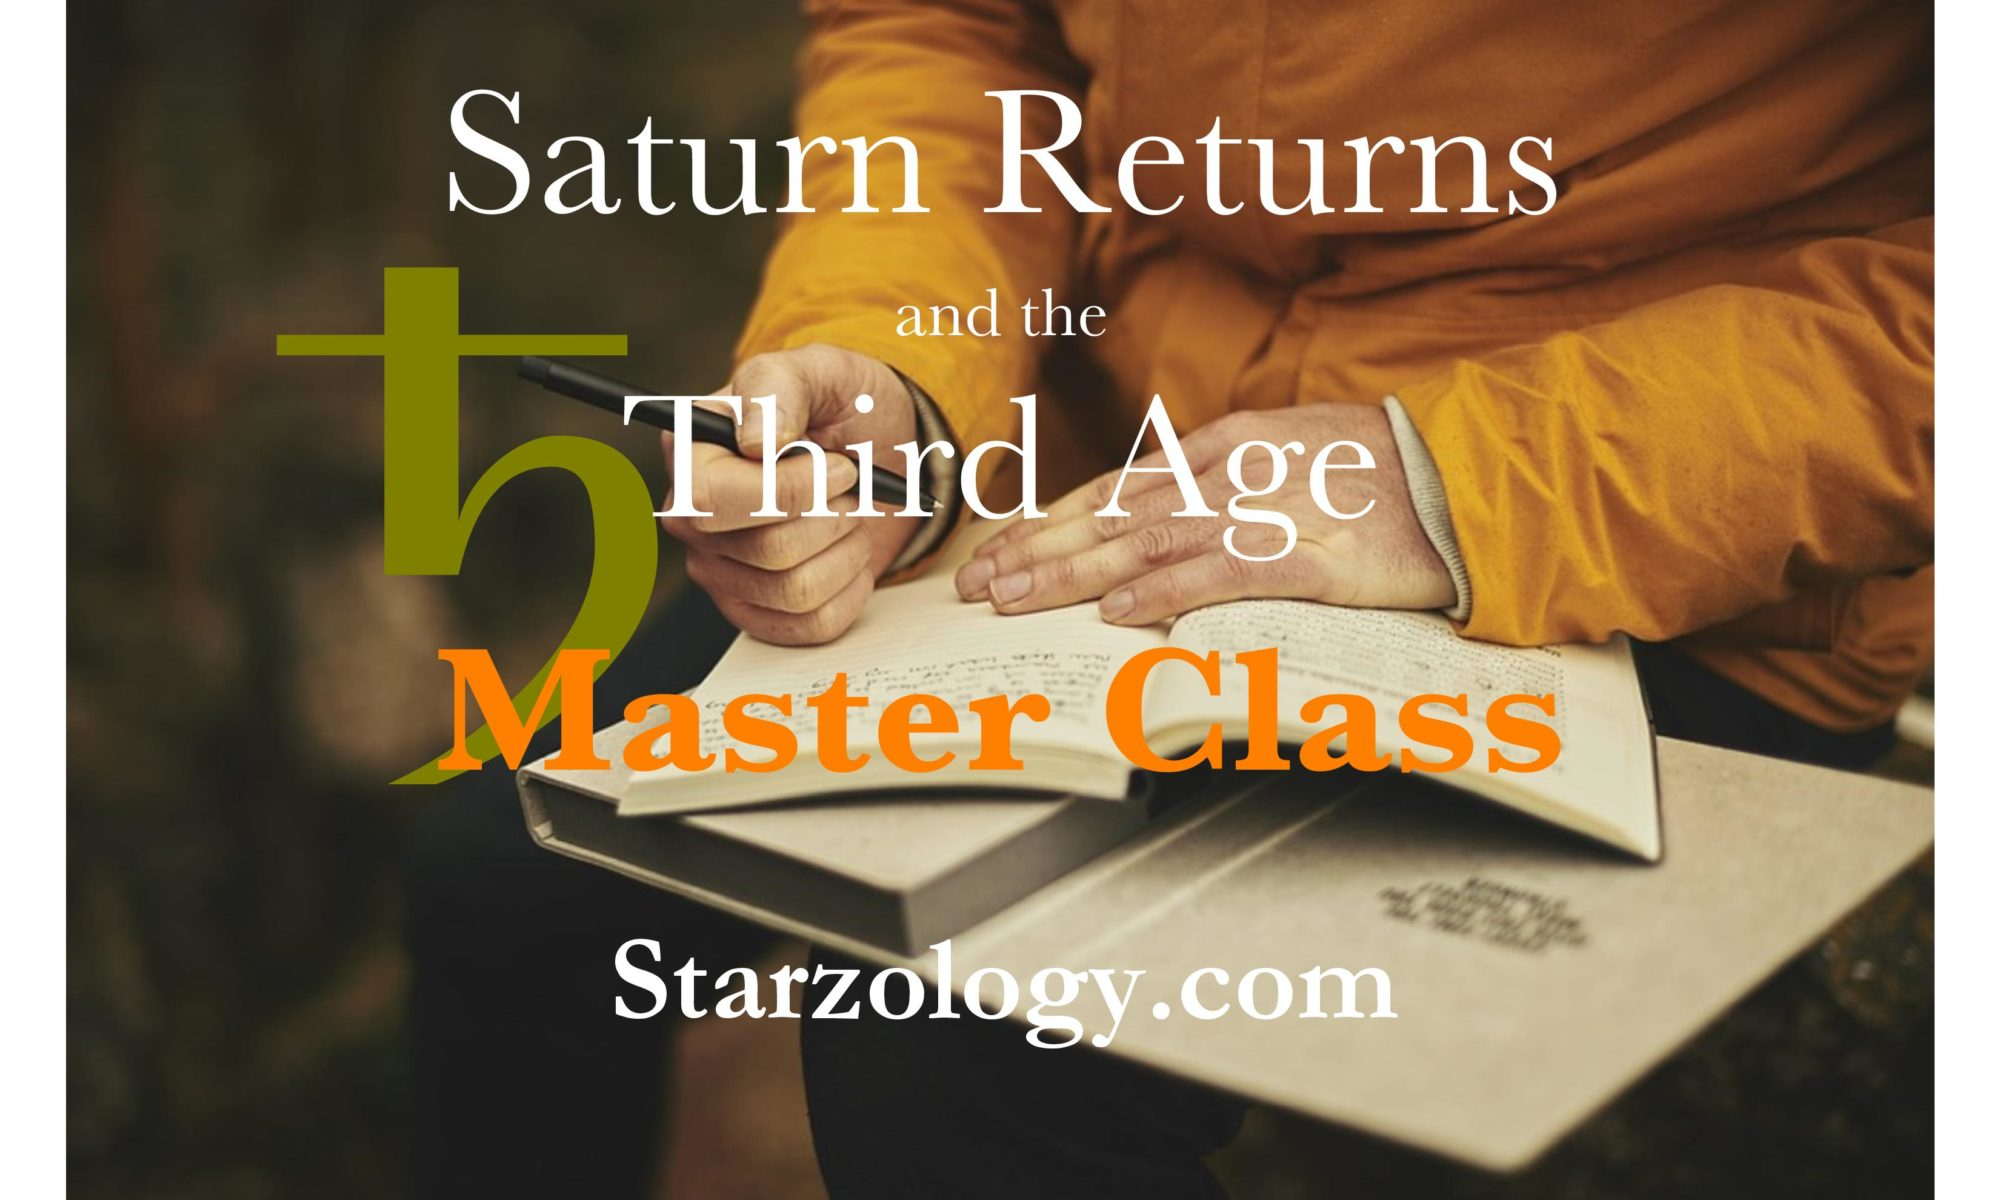 Saturn Return Masterclass - Vancouver - Starzology - Astrology with